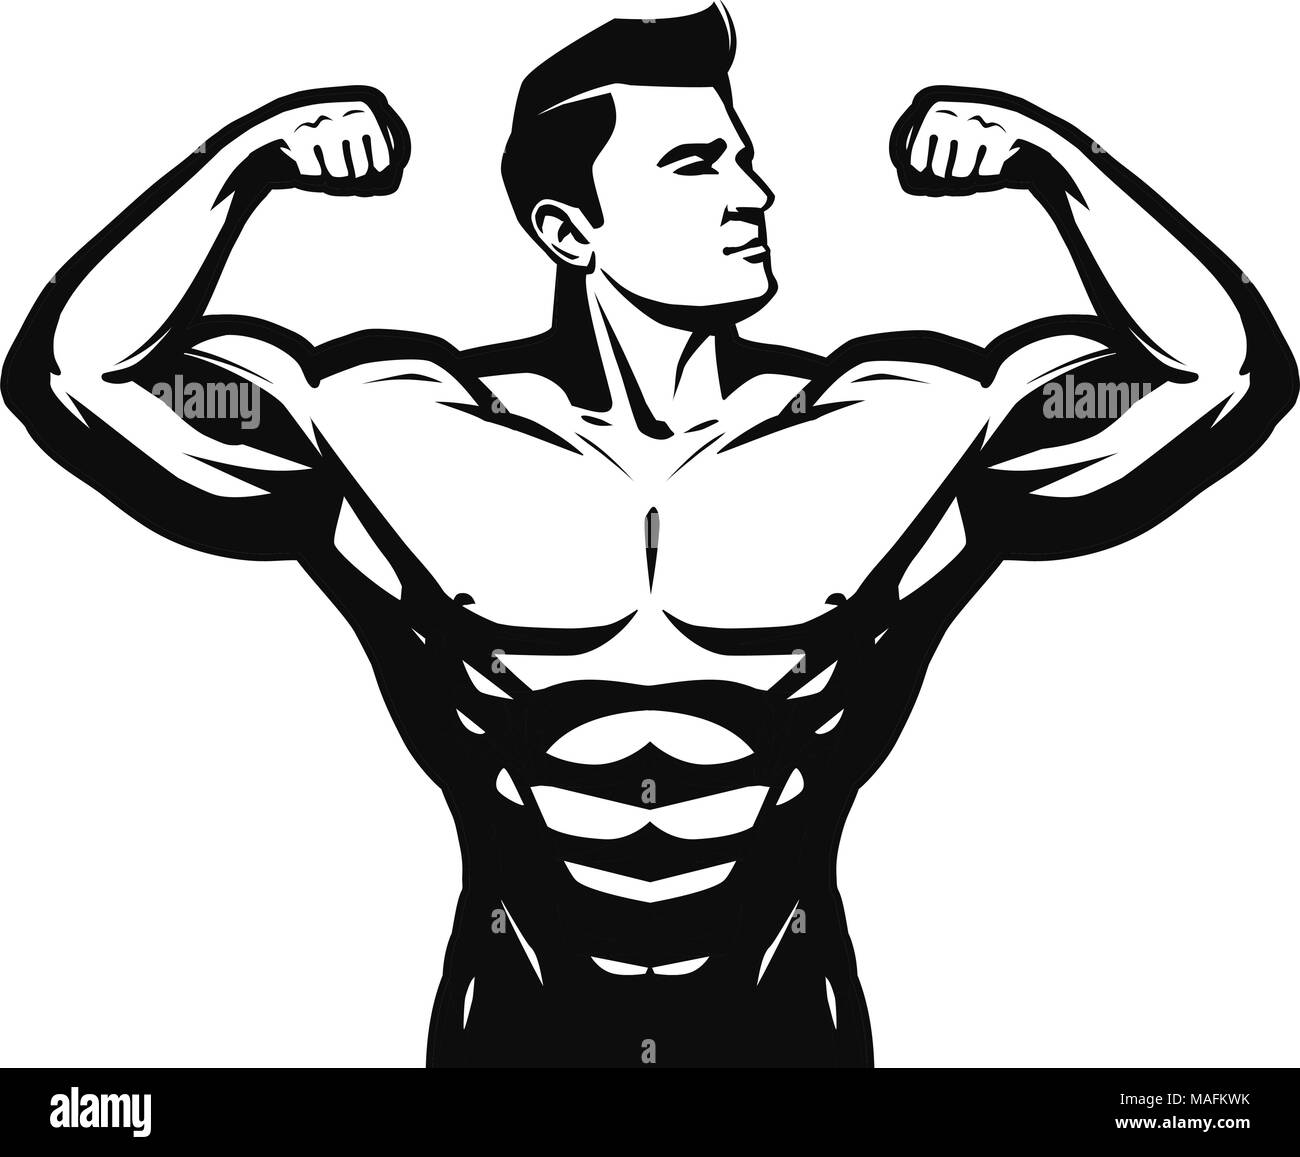 Gym, sport, bodybuilding logo or label. Strong man with big muscles. Vector illustration - Stock Image